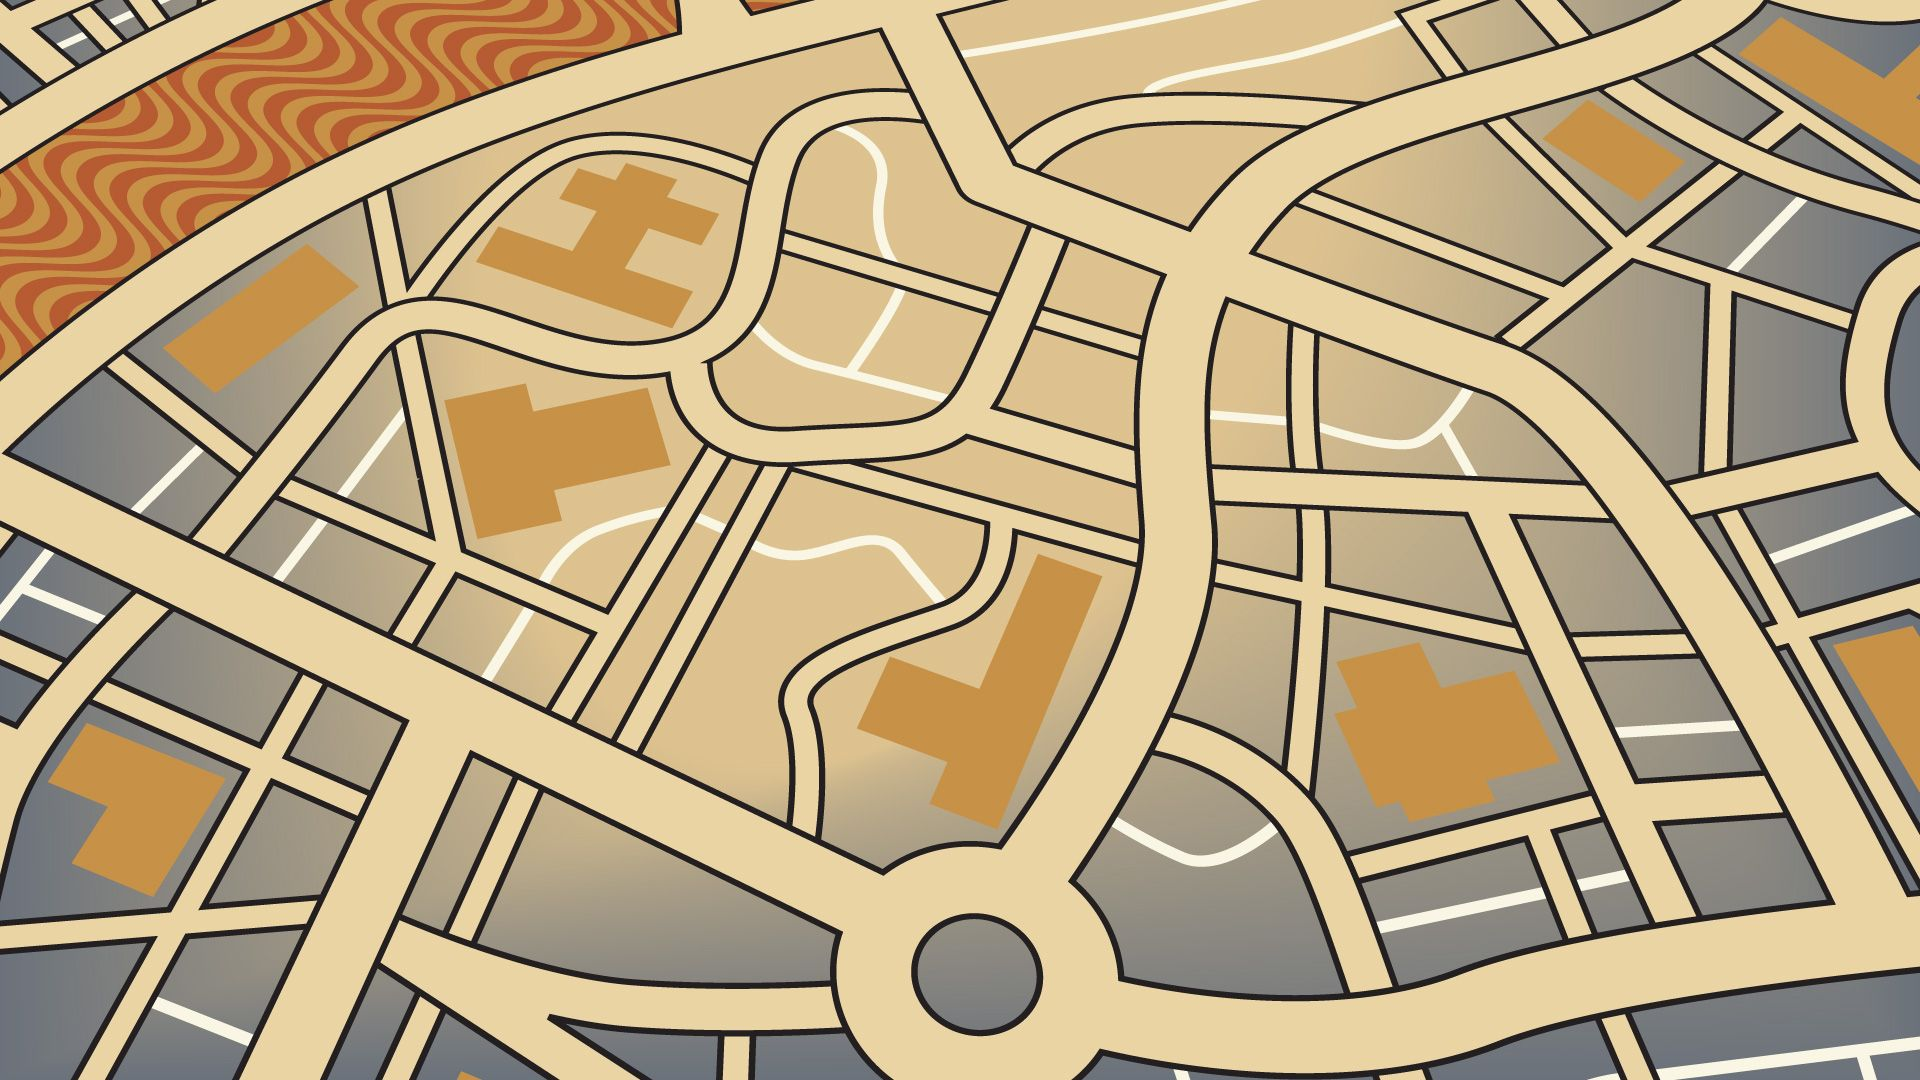 RT Thomas_Bishara Google Launches New Maps Search Results Interface #LocalSEO http://t.co/66ls3xwjQ1 via thomas_bishara (to view copy and paste link into browser)